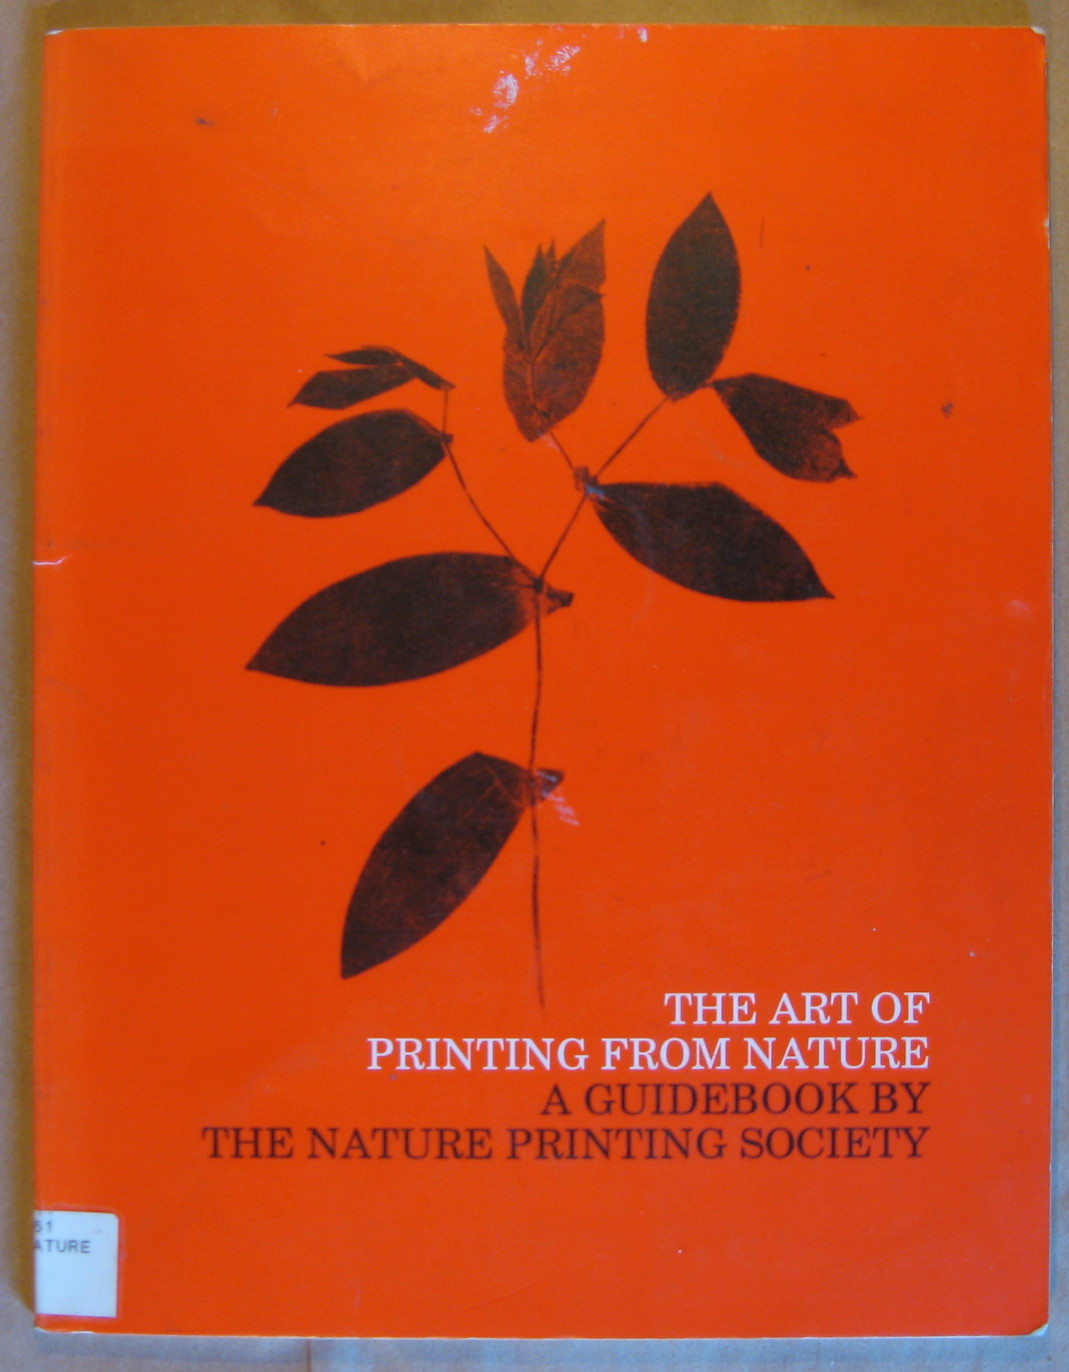 The Art of Printing from Nature:  A Guidebook By The Nature Printing Society